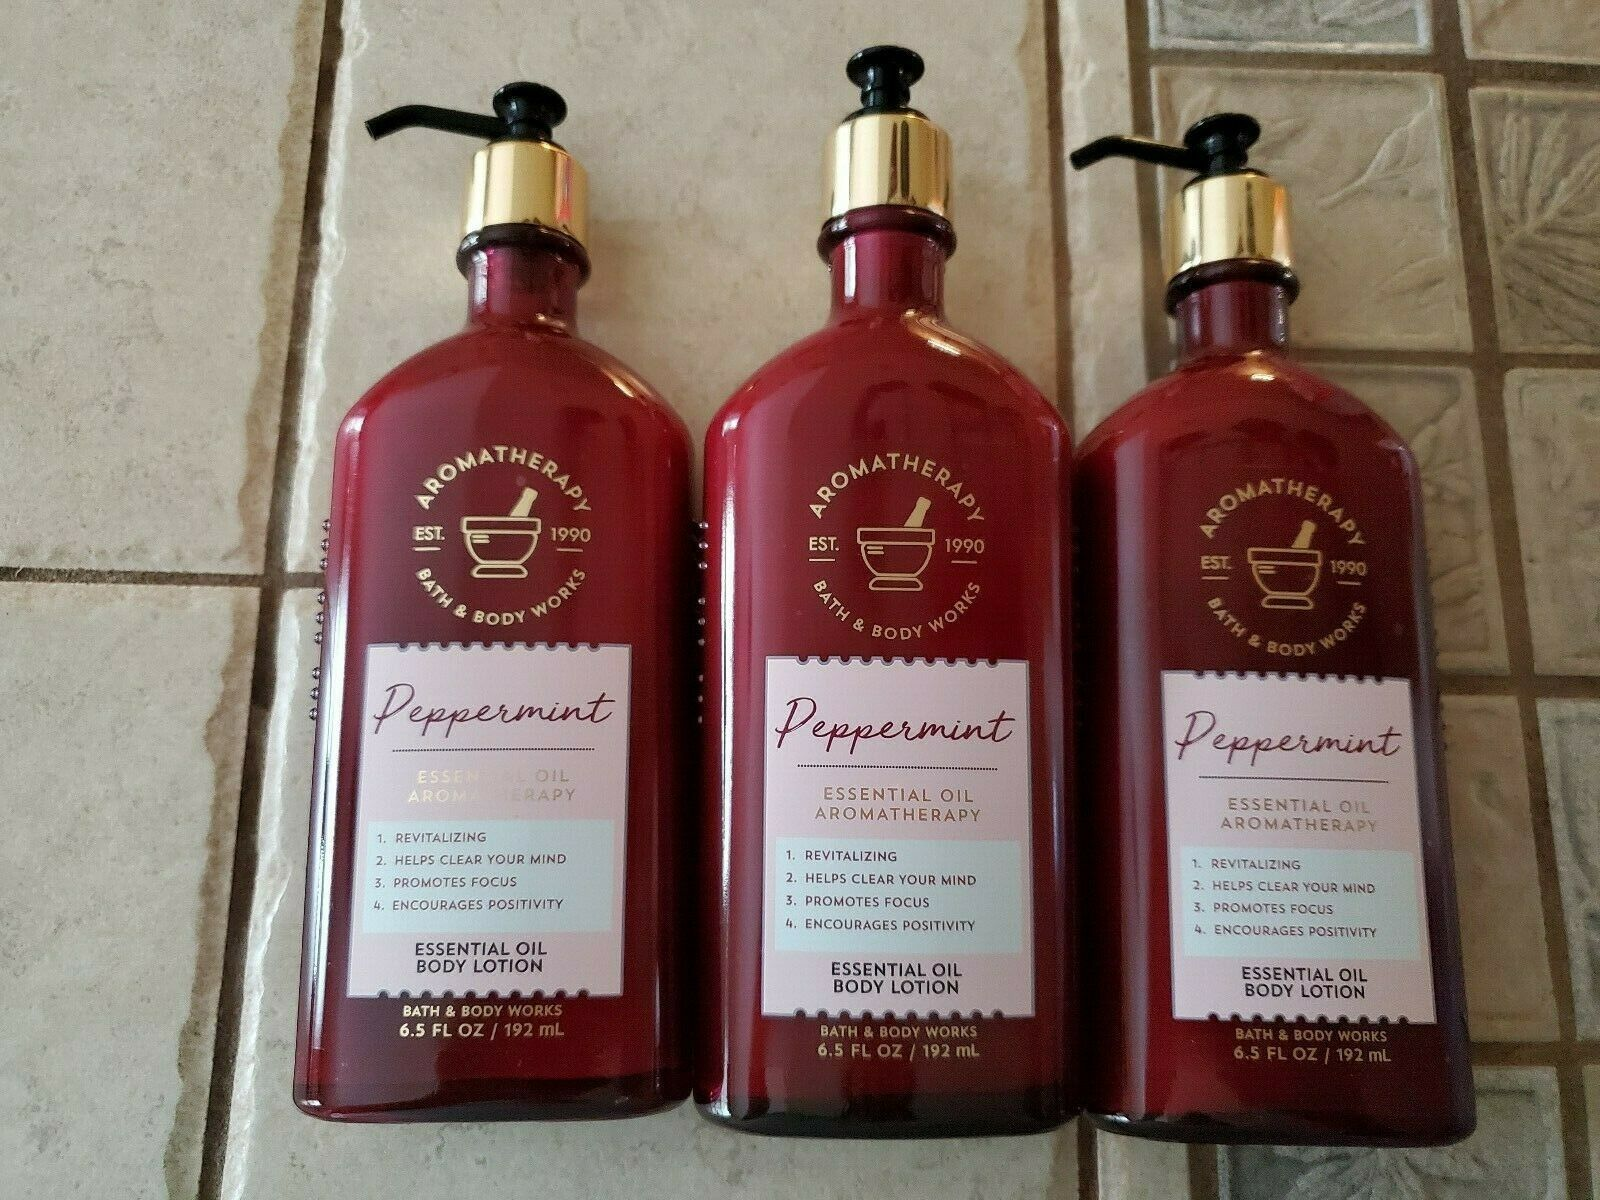 Primary image for Bath & Body Works Peppermint Essential Oil Body Lotion 6.5 fl oz (3 pack)